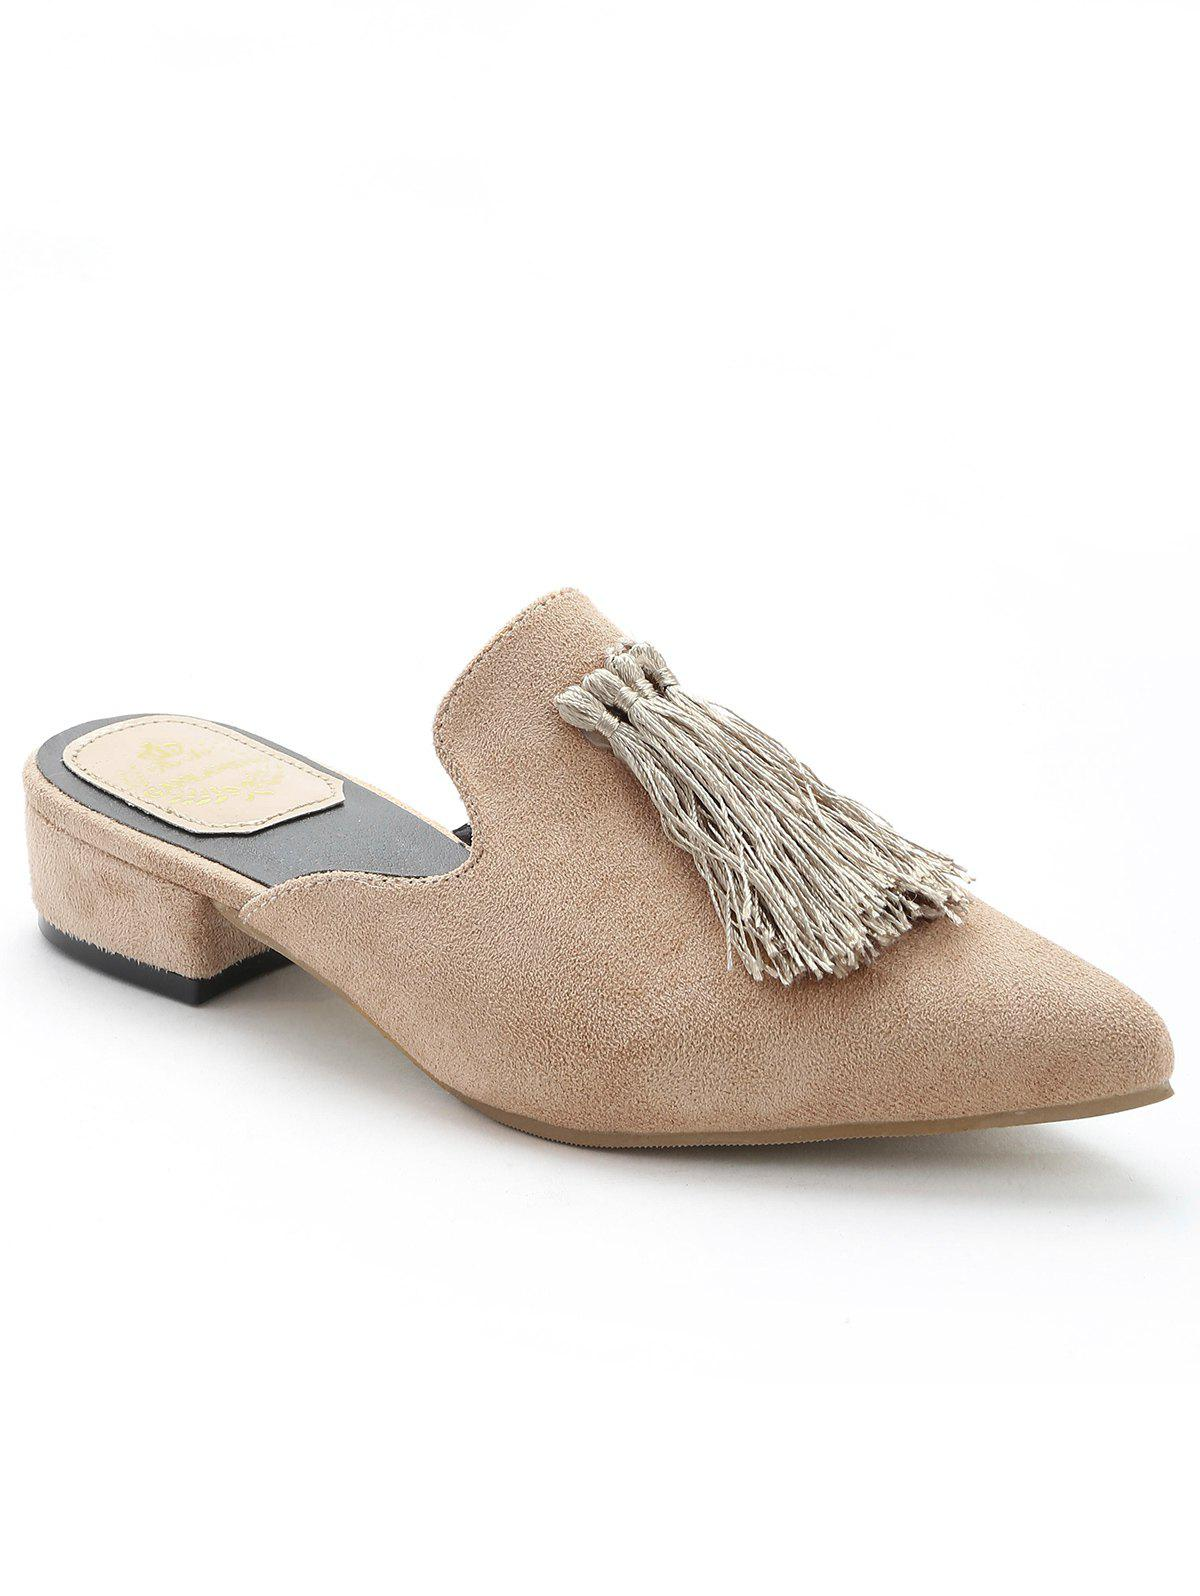 Sale Casual Outdoor Slipper Flats